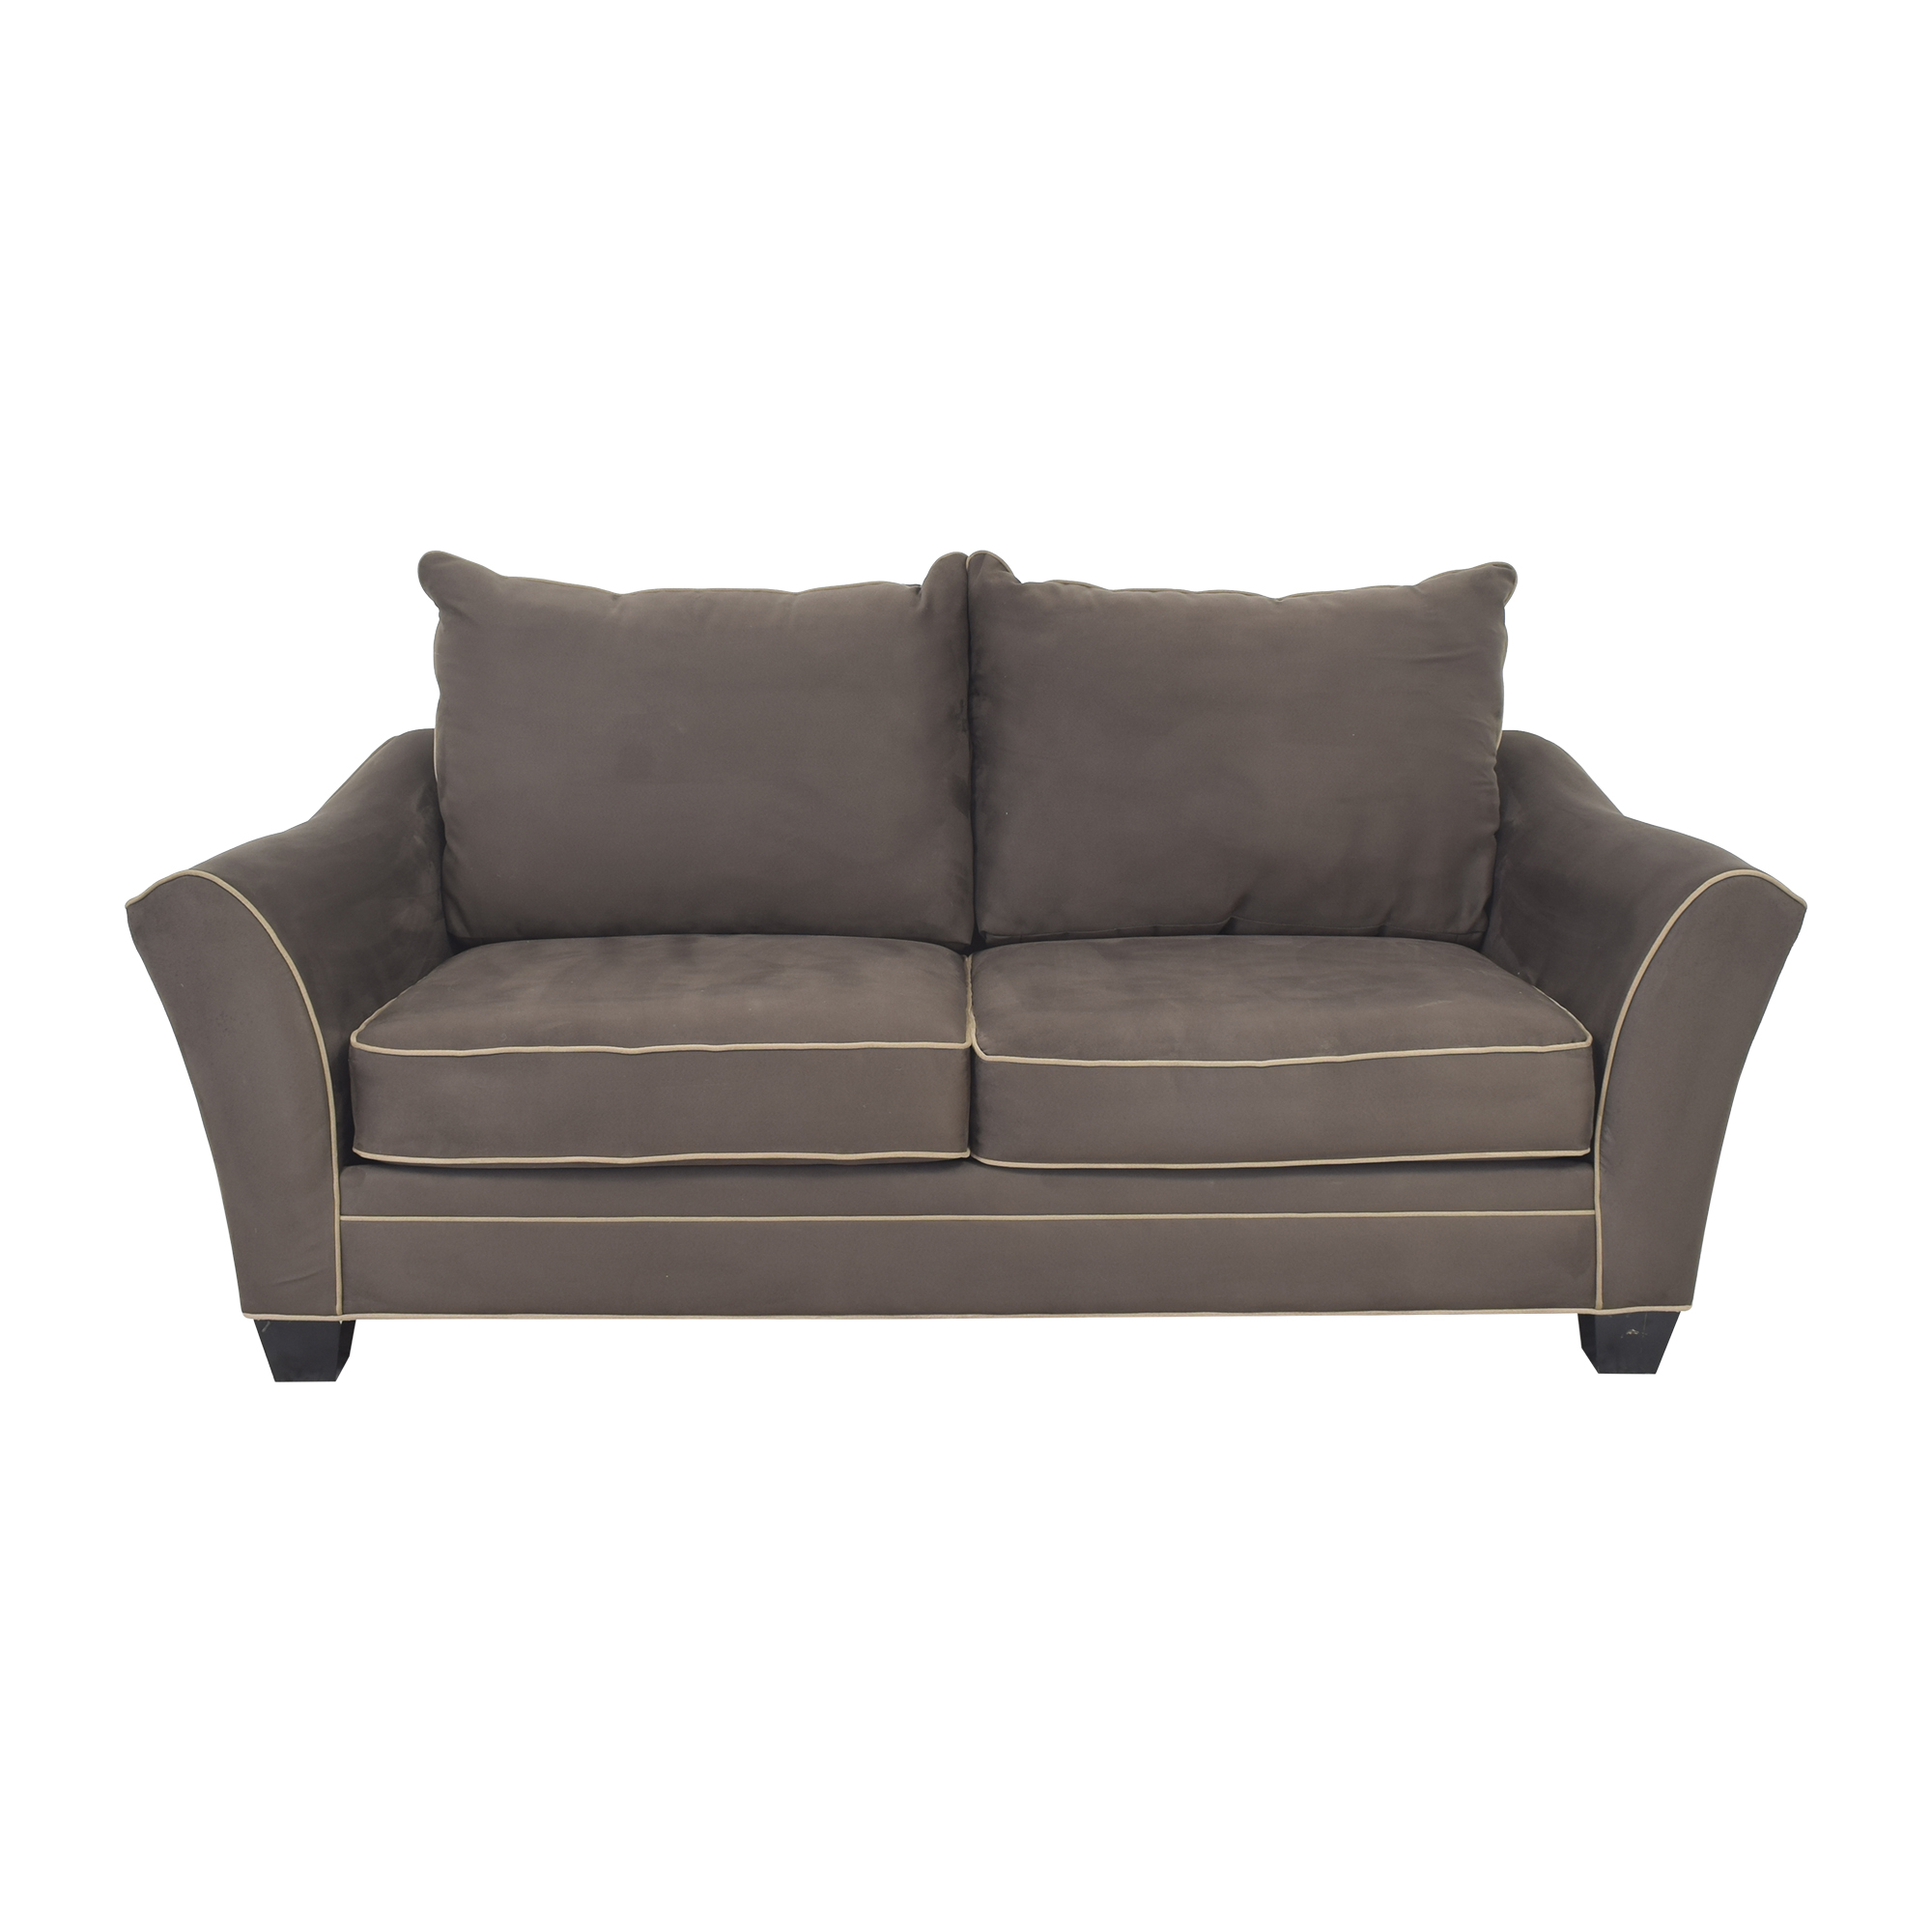 Raymour & Flanigan Raymour & Flanigan Tapered Arm Sofa on sale